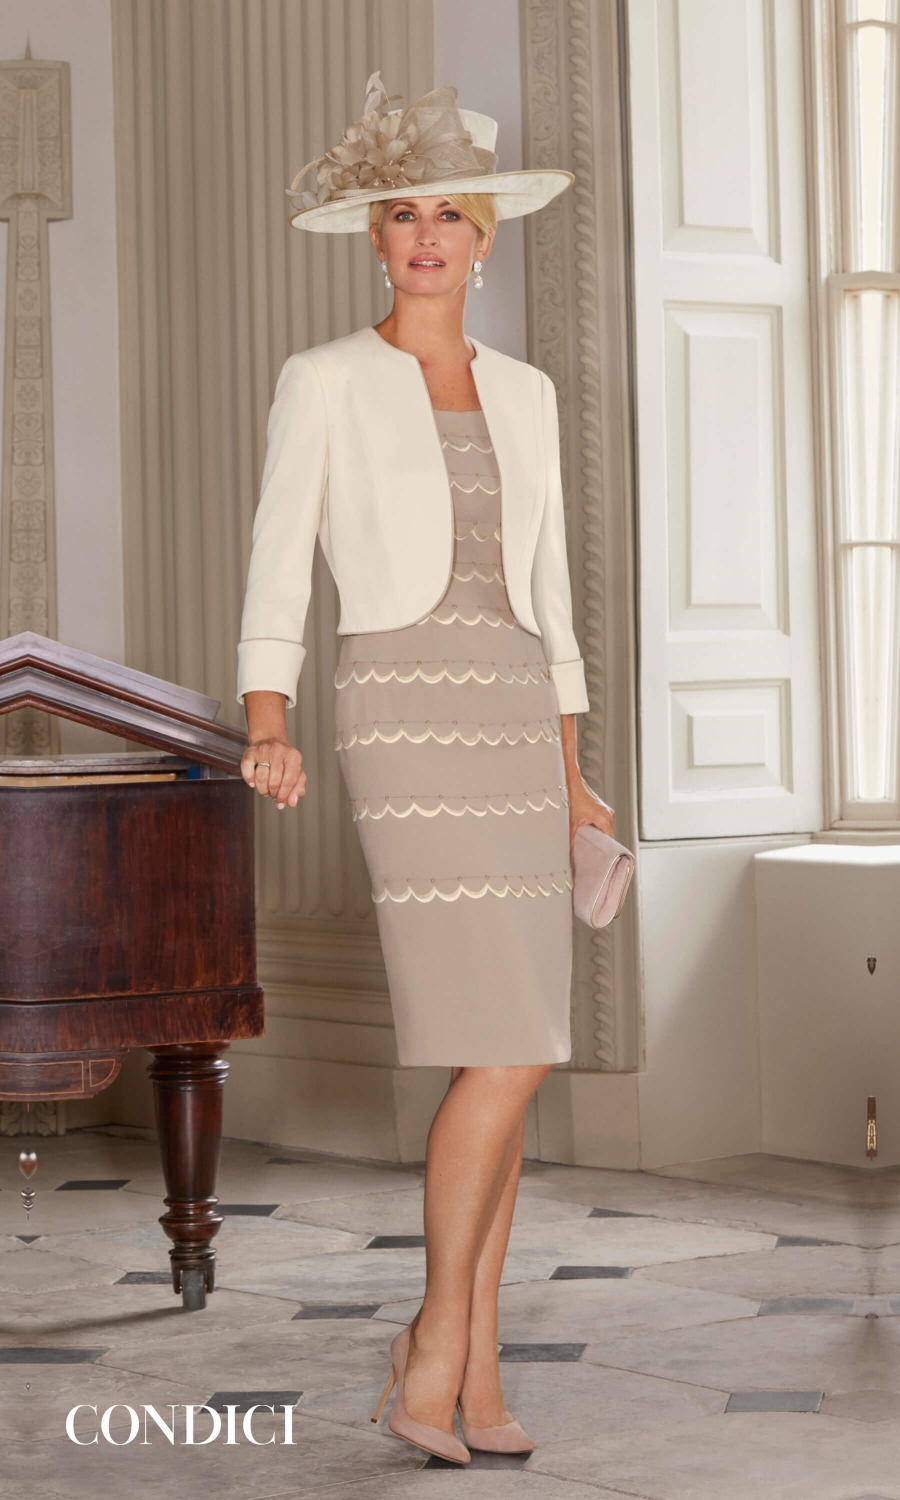 8700-condici-70937-bisque-mother-of-the-bride-outfit-6000870-0.jpg